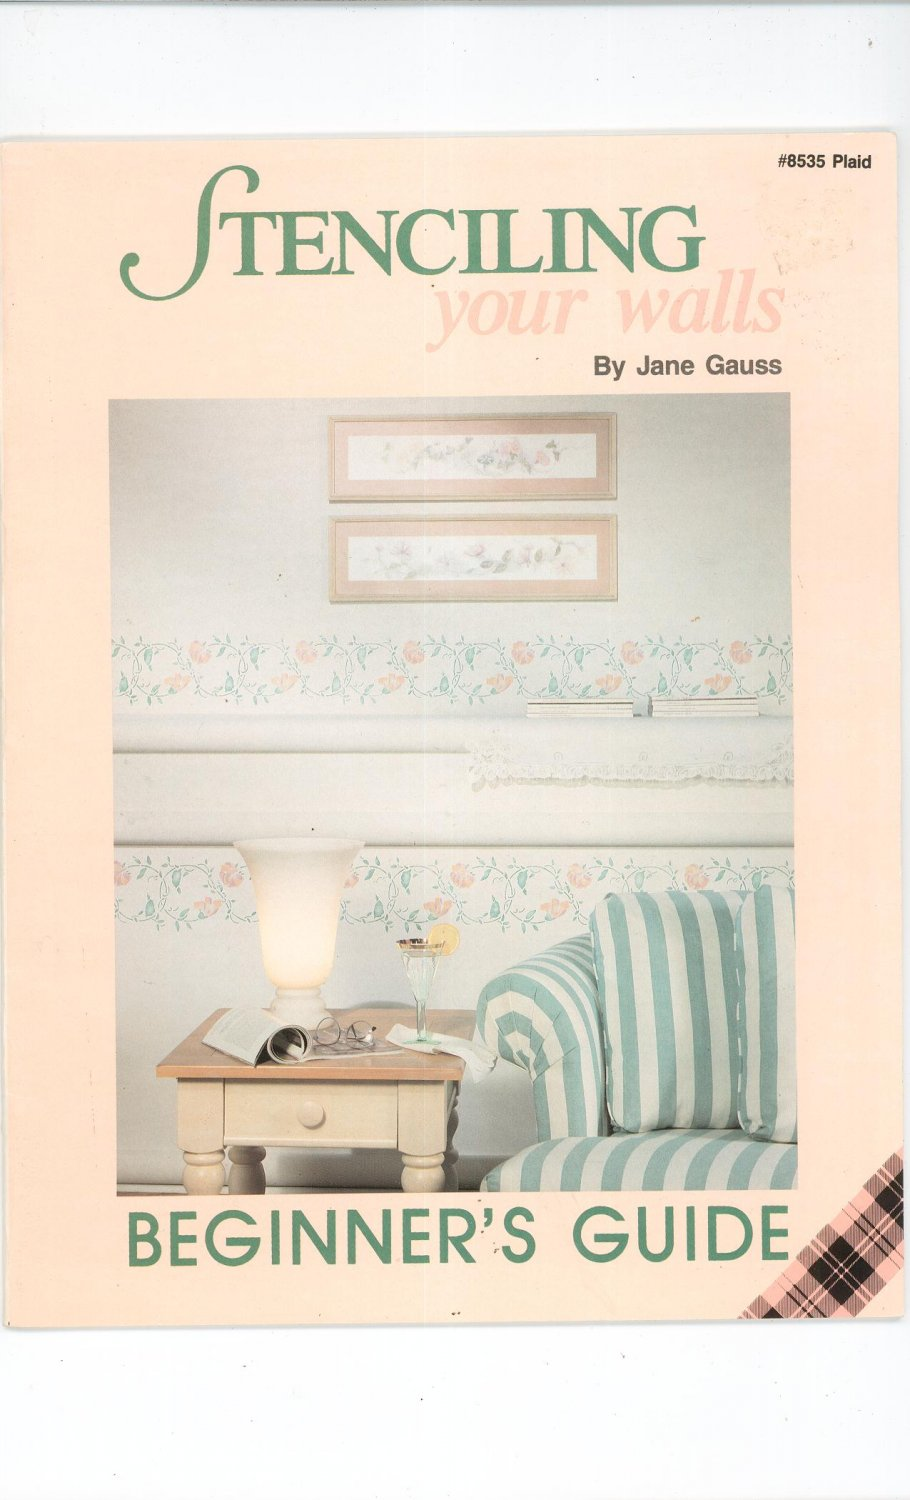 Stenciling Your Walls By Jane Gauss # 8535 Plaid Beginners Guide